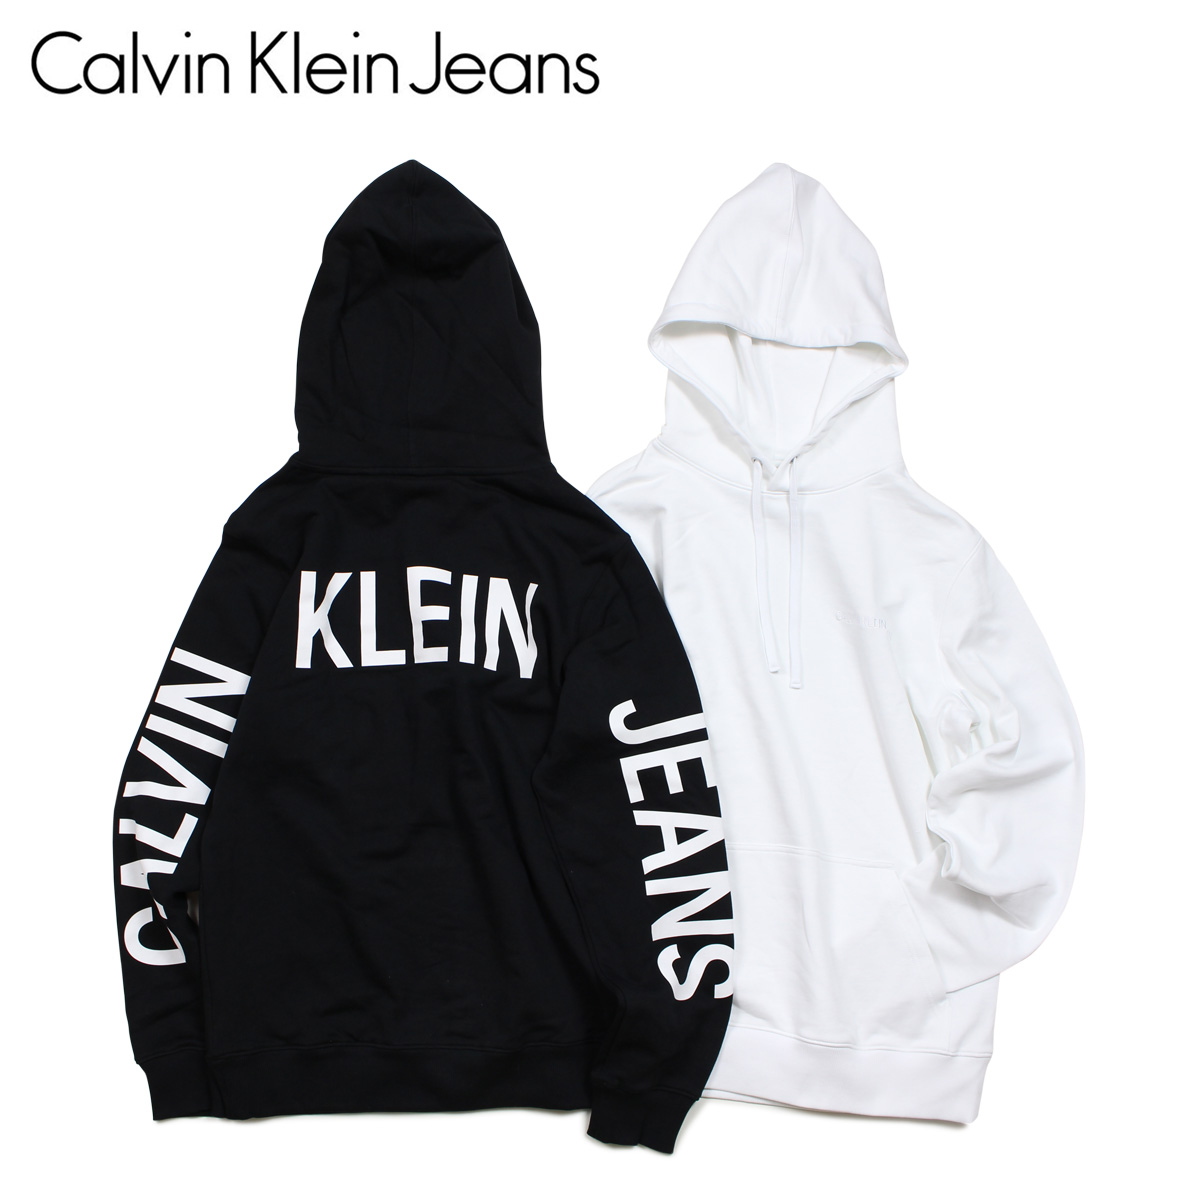 separation shoes 2cfa9 74c2e Calvin Klein Jeans Calvin Klein jeans parka pullover men INSTITUTIONAL BACK  LOGO HOODIE black white black and white J30J311569